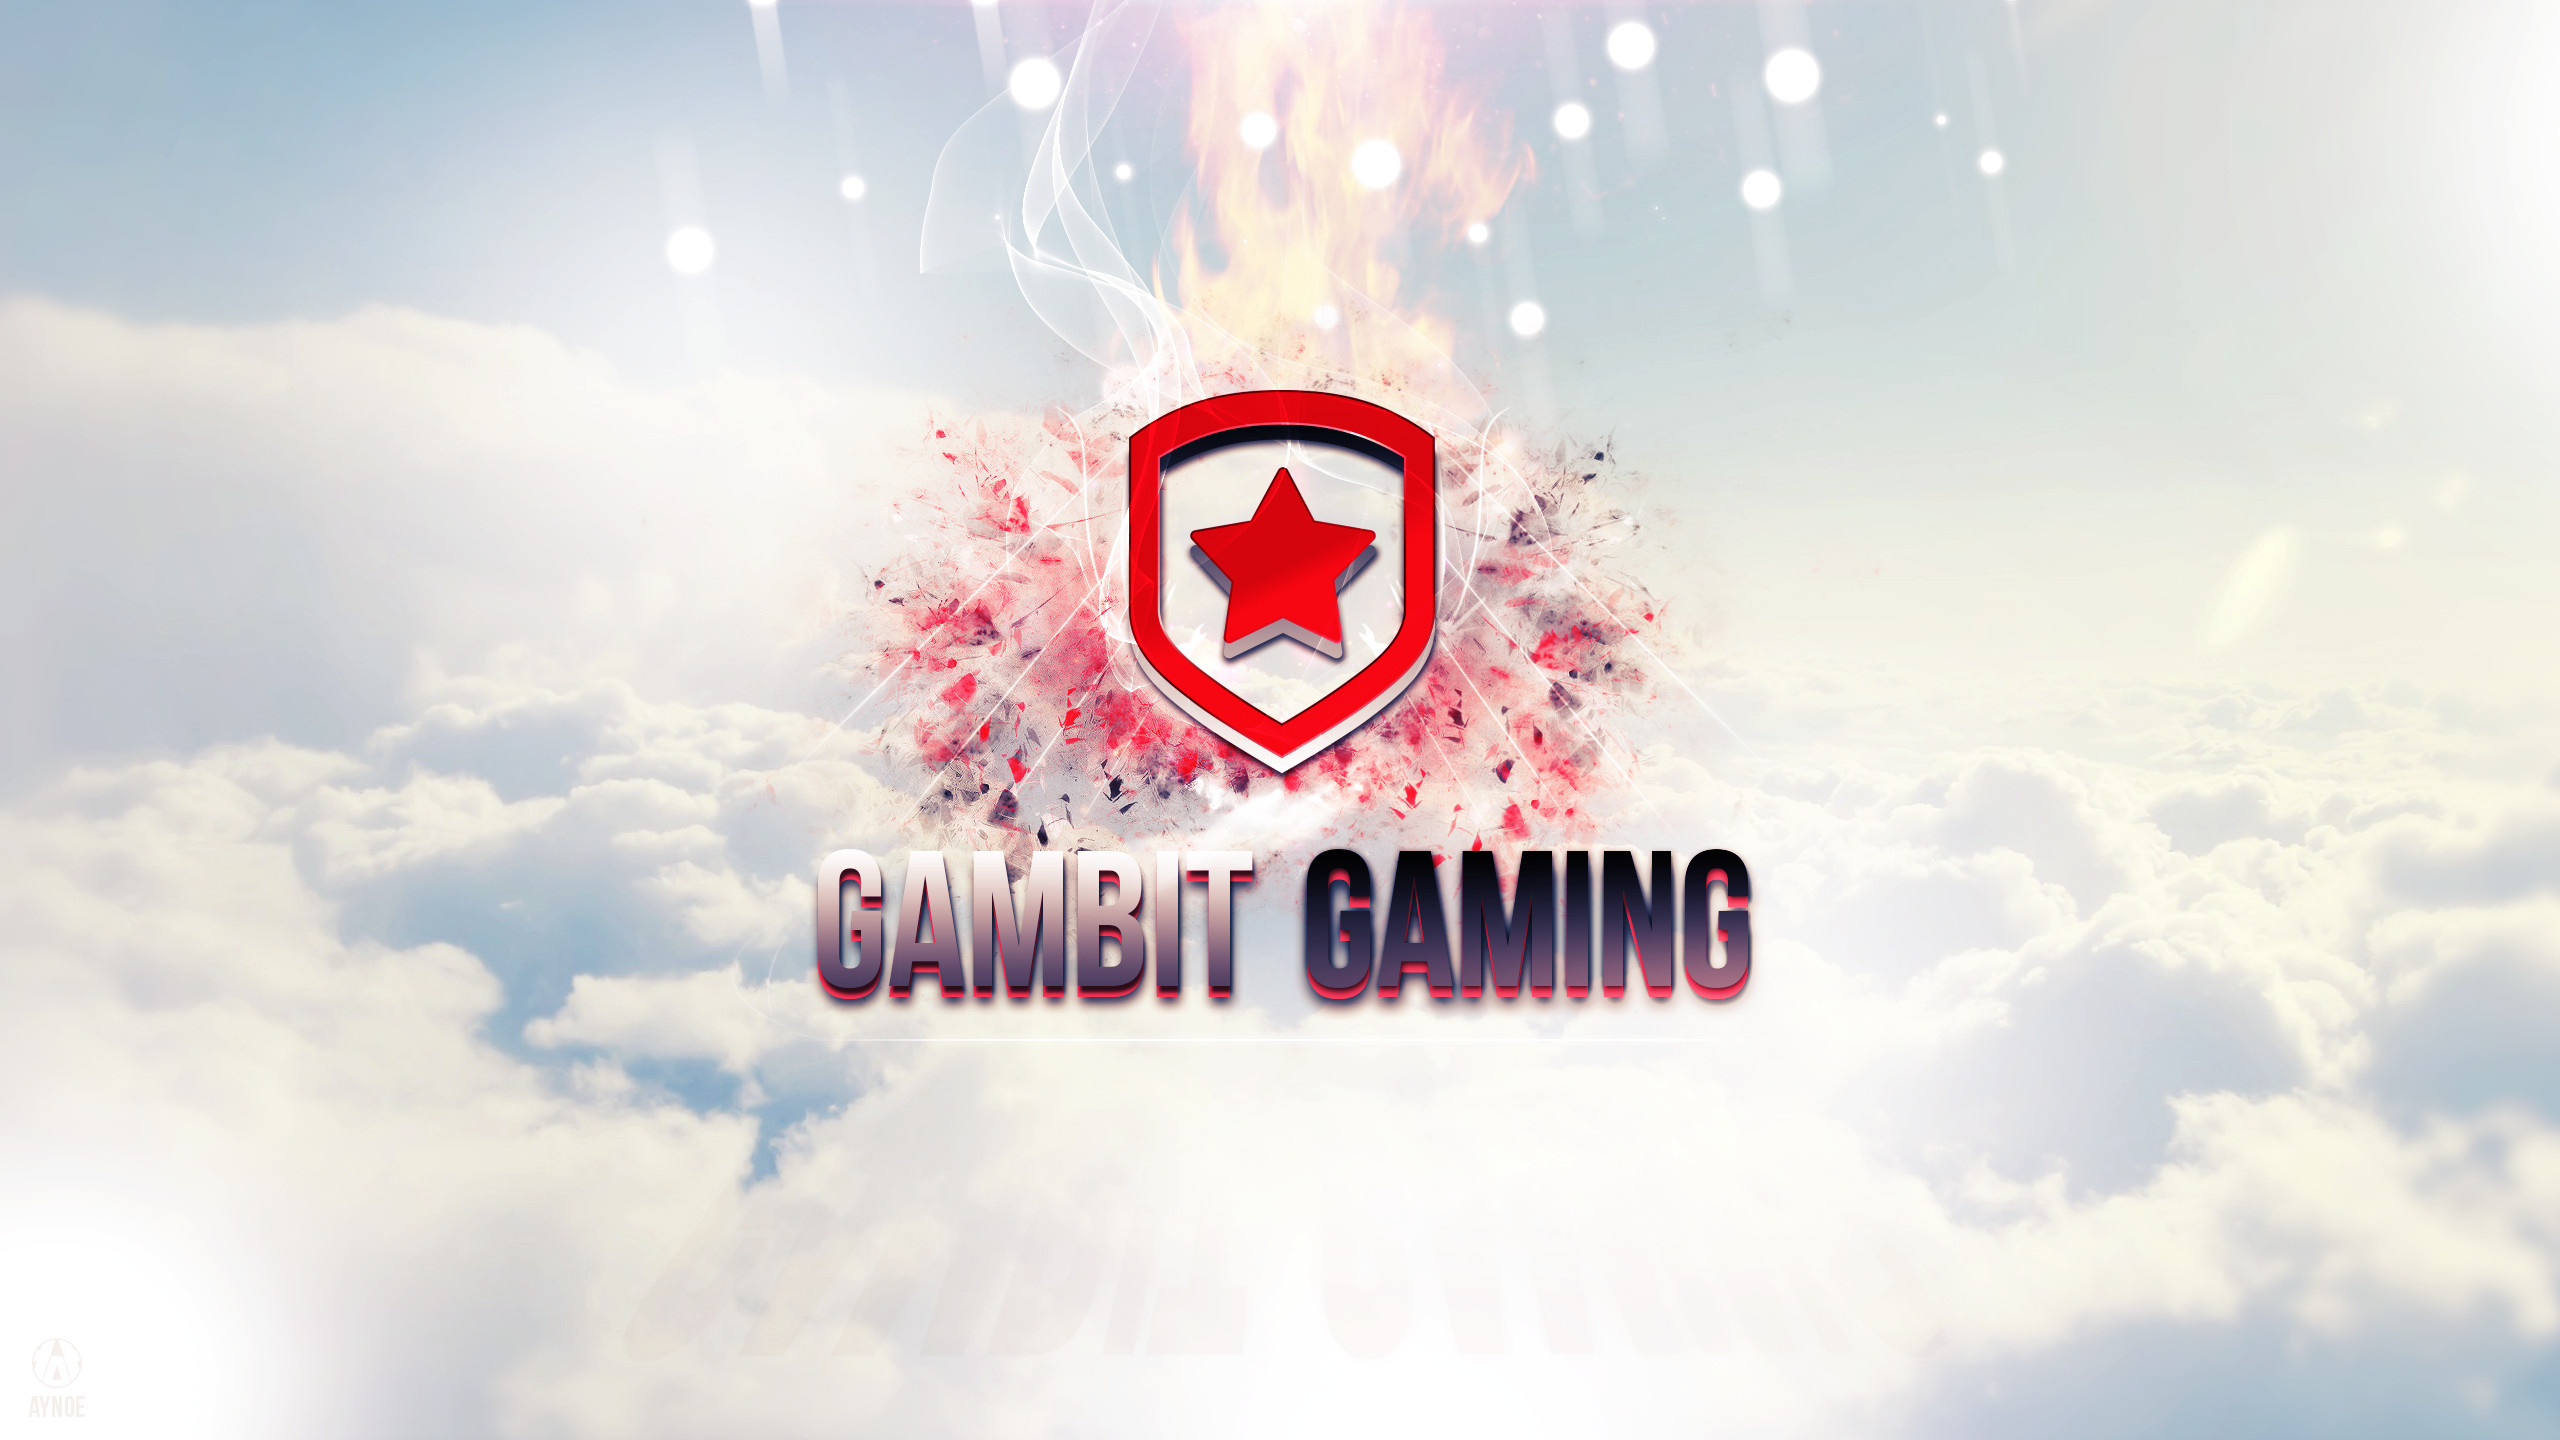 2560x1440 ... Gambit Gaming Wallpaper Logo - League of Legends by Aynoe